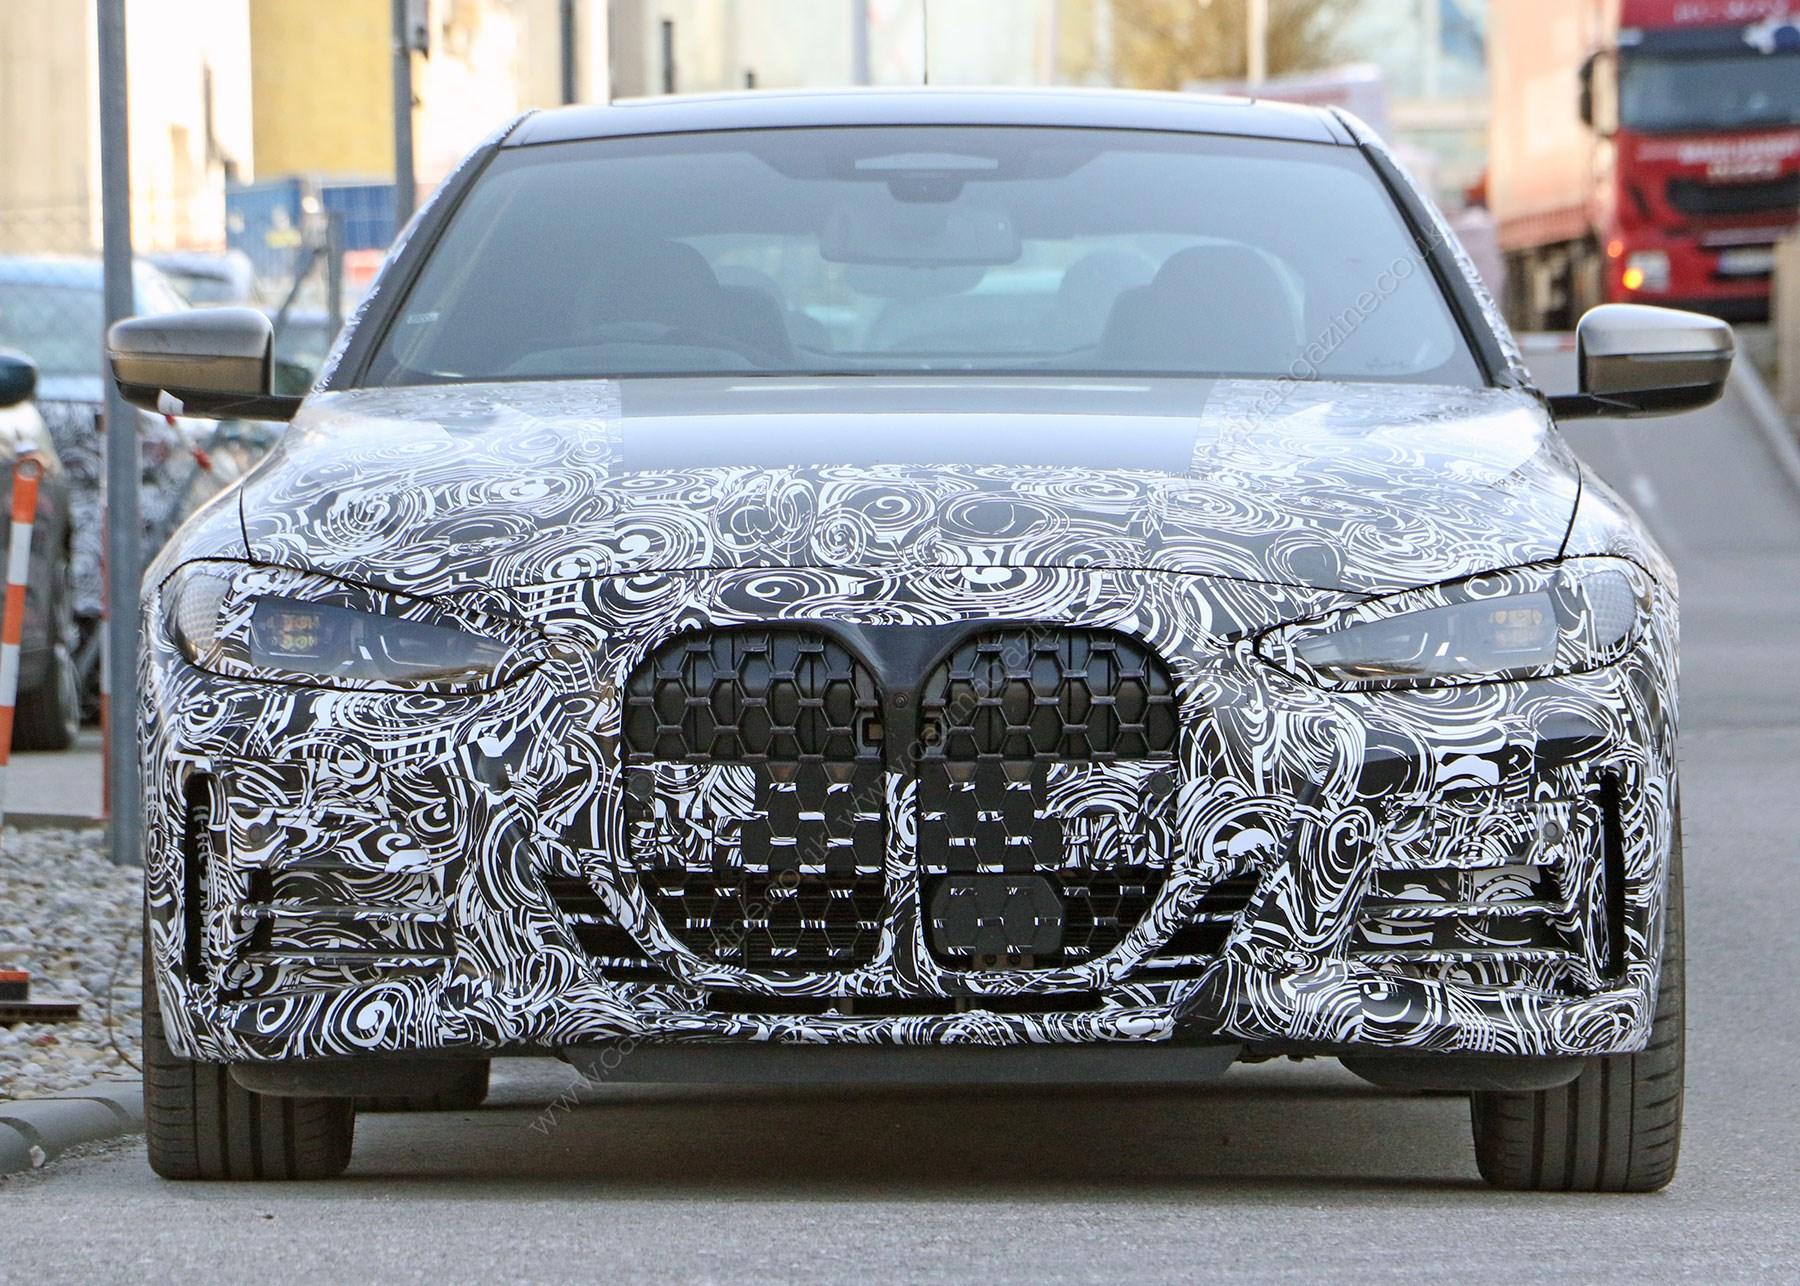 2020 Bmw X7 Vs 7 Series Who Has The Biggest Grille Autoevolution